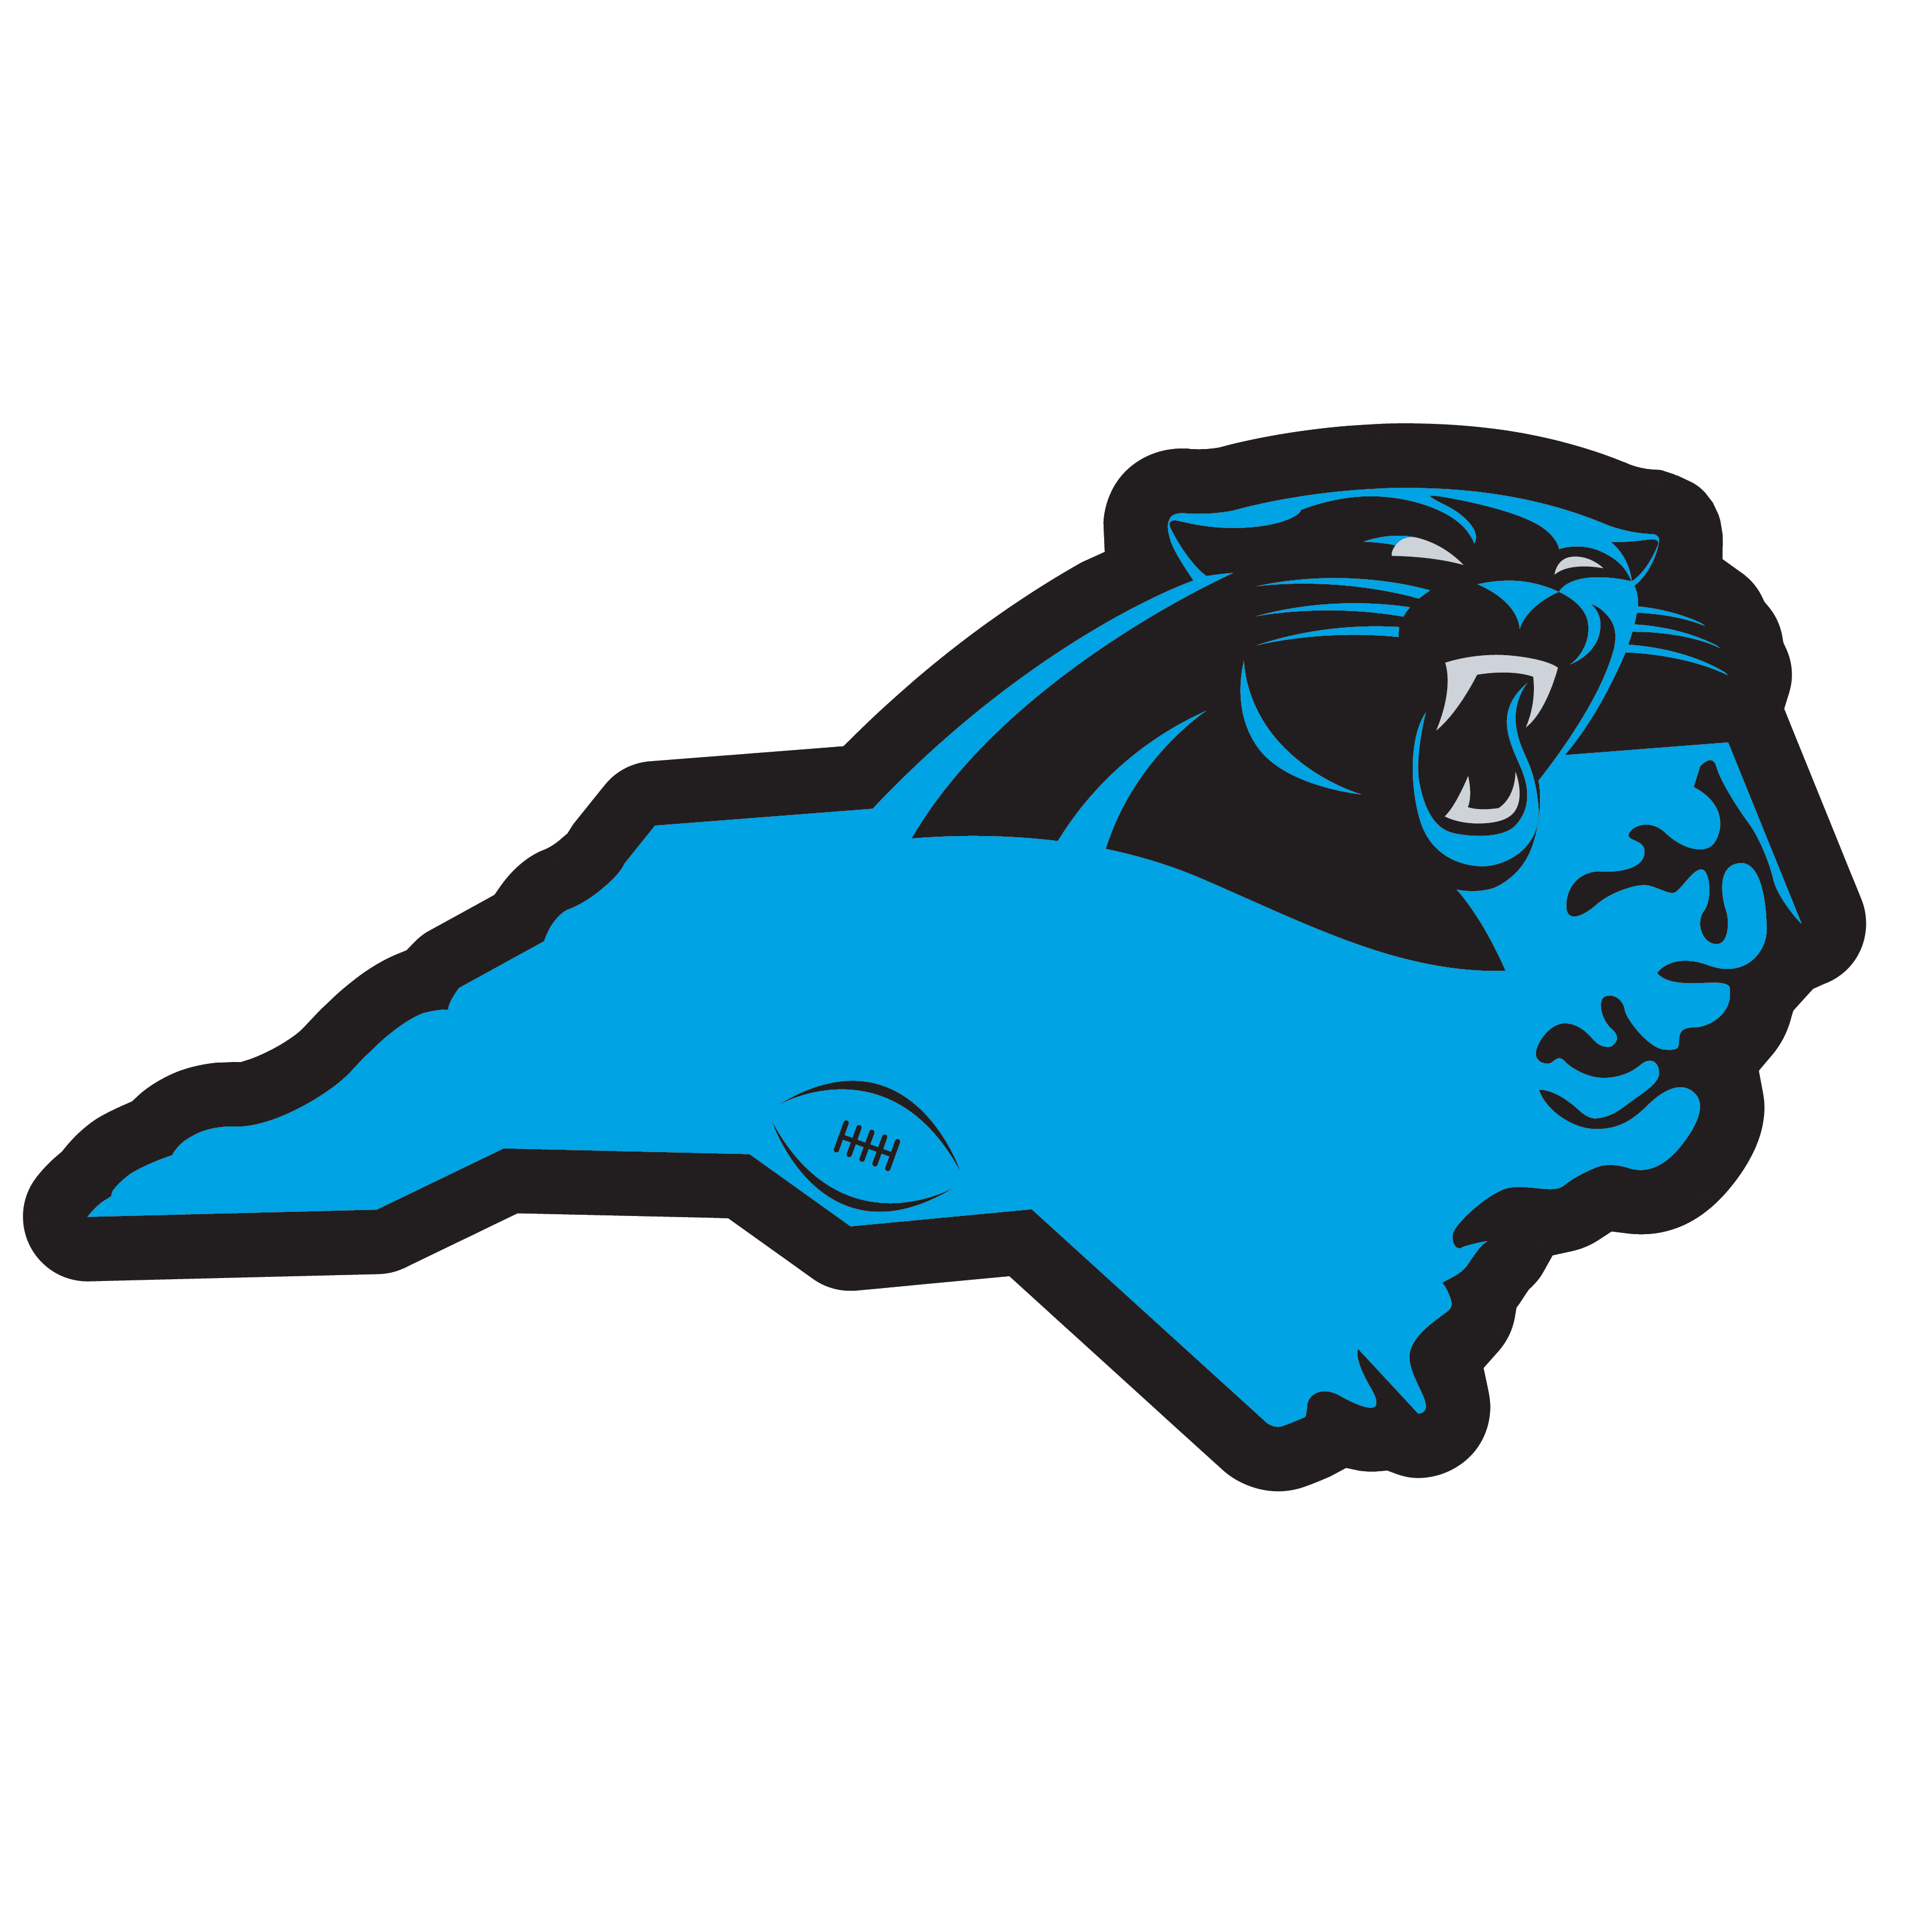 Carolina Panthers Home State 11 Inch Magnet - Whether you are caravaning to the game or having a tailgate party make sure you car is wearing its fan gear with our extra large, 11 inch Carolina Panthers home state magnets. These striking magnets can be easily placed on for game day and removed without he residue left by decals. The design features a bright state outline with the location of the team highlighted with a football and a large team logo.